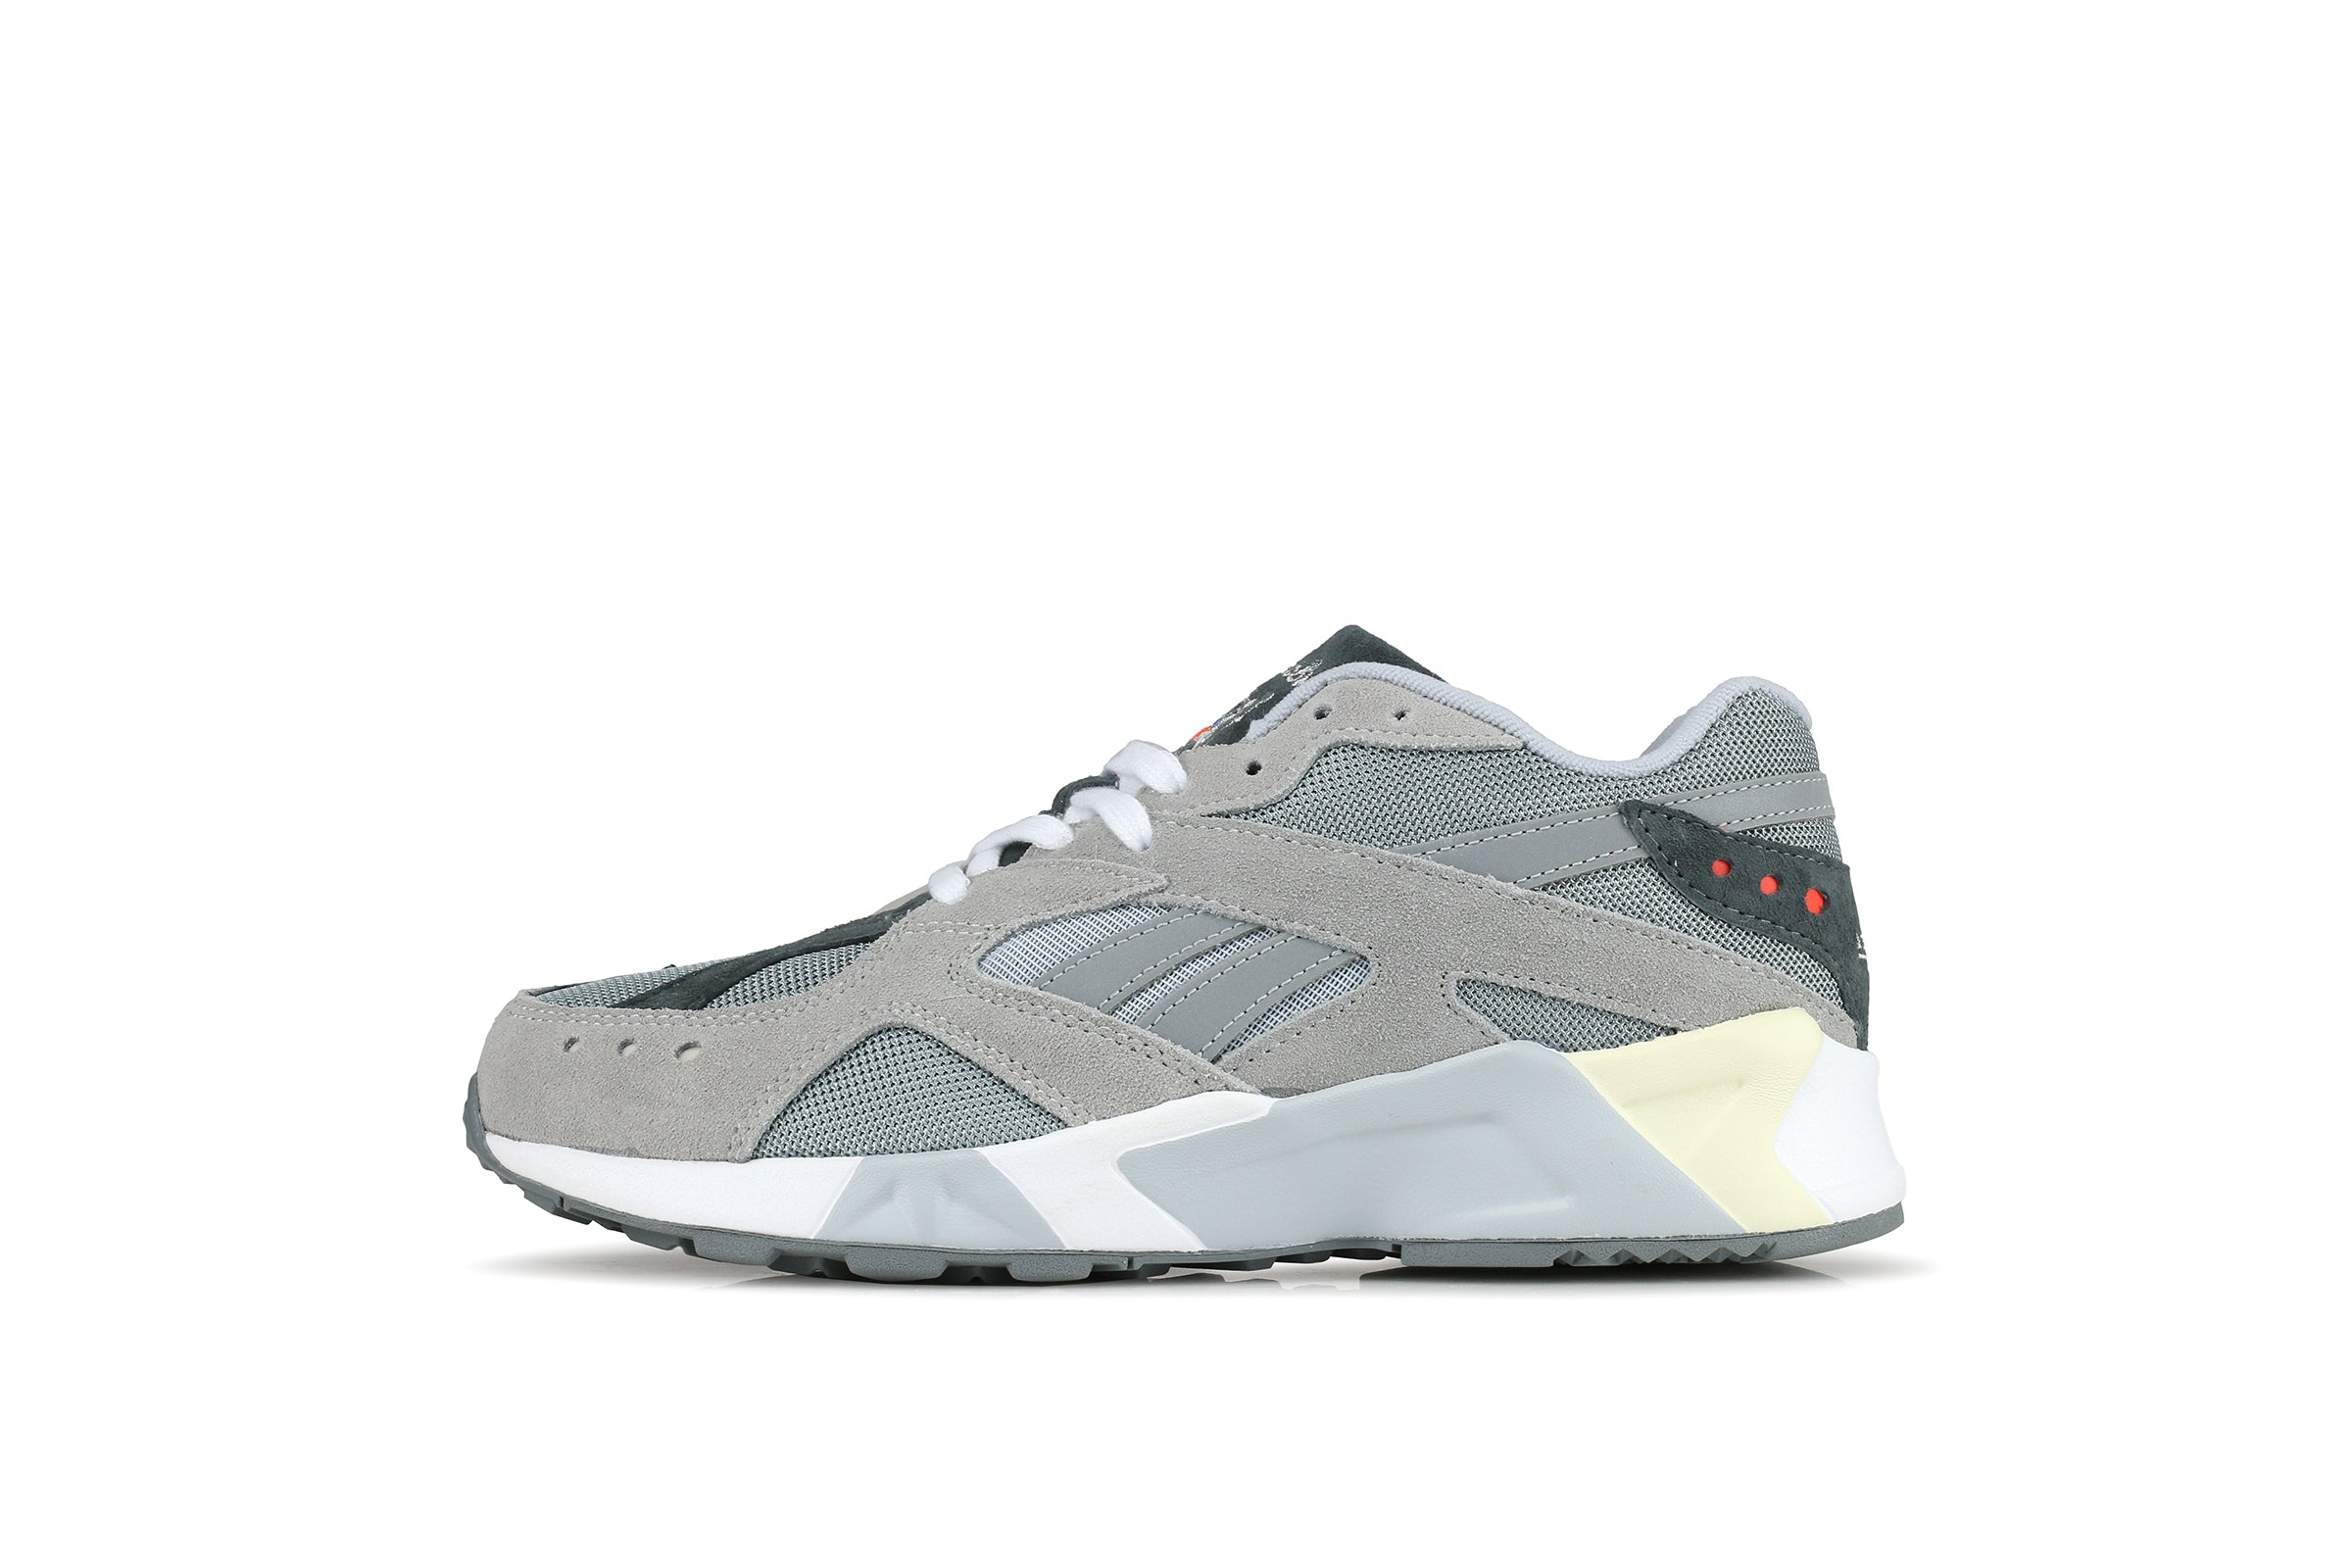 Reebok Aztrek x Packer